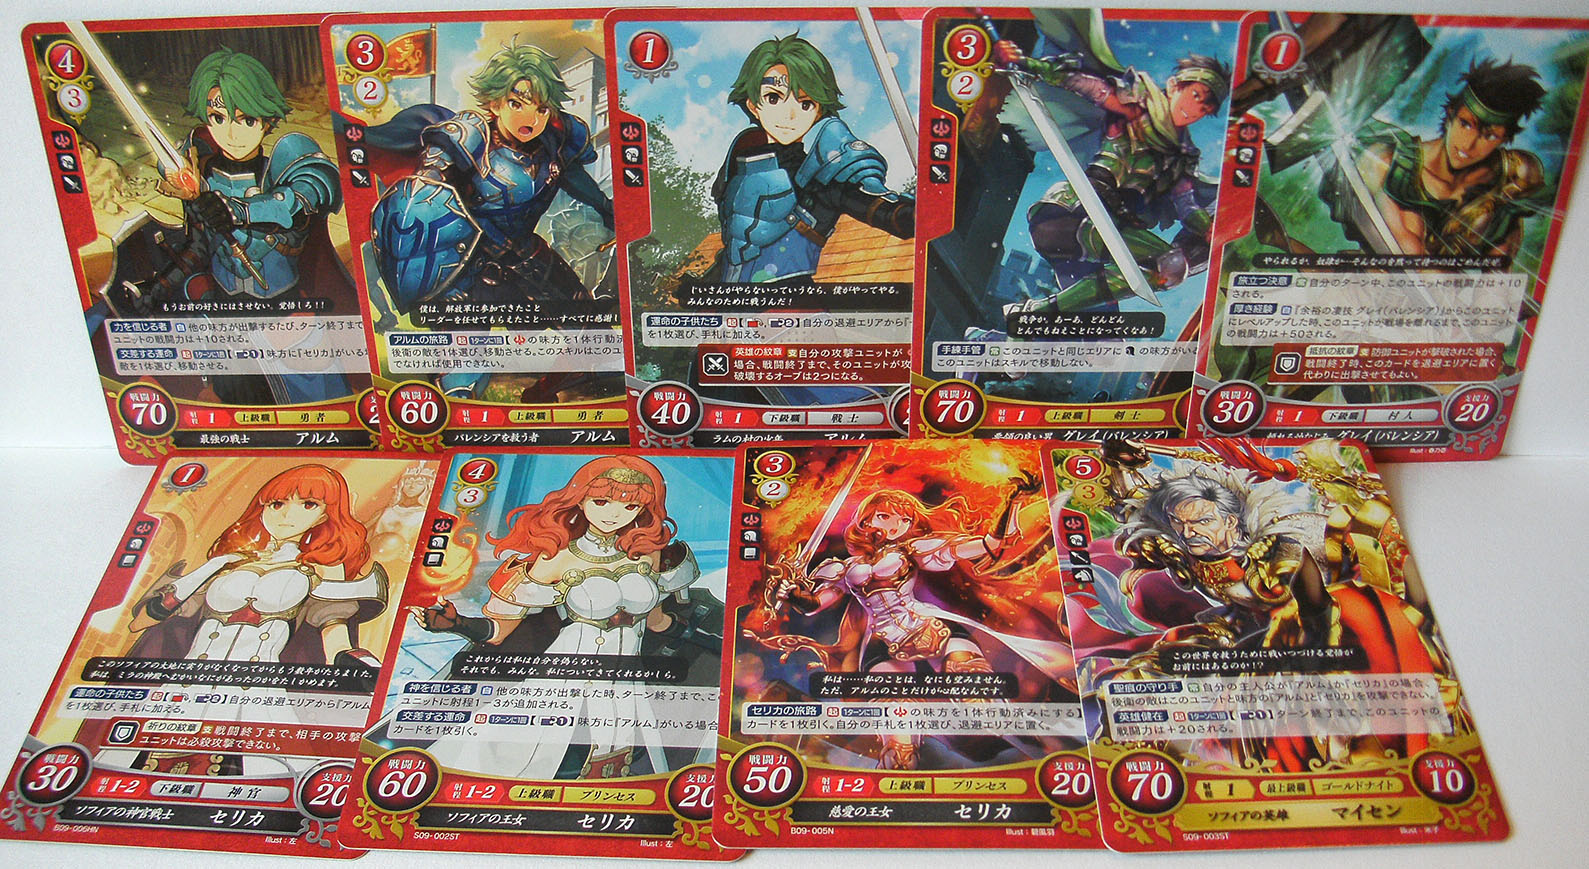 Echoes/Shadows of Valentia Fire Emblem Cipher TCG cards (series 9) sold by  shinyv